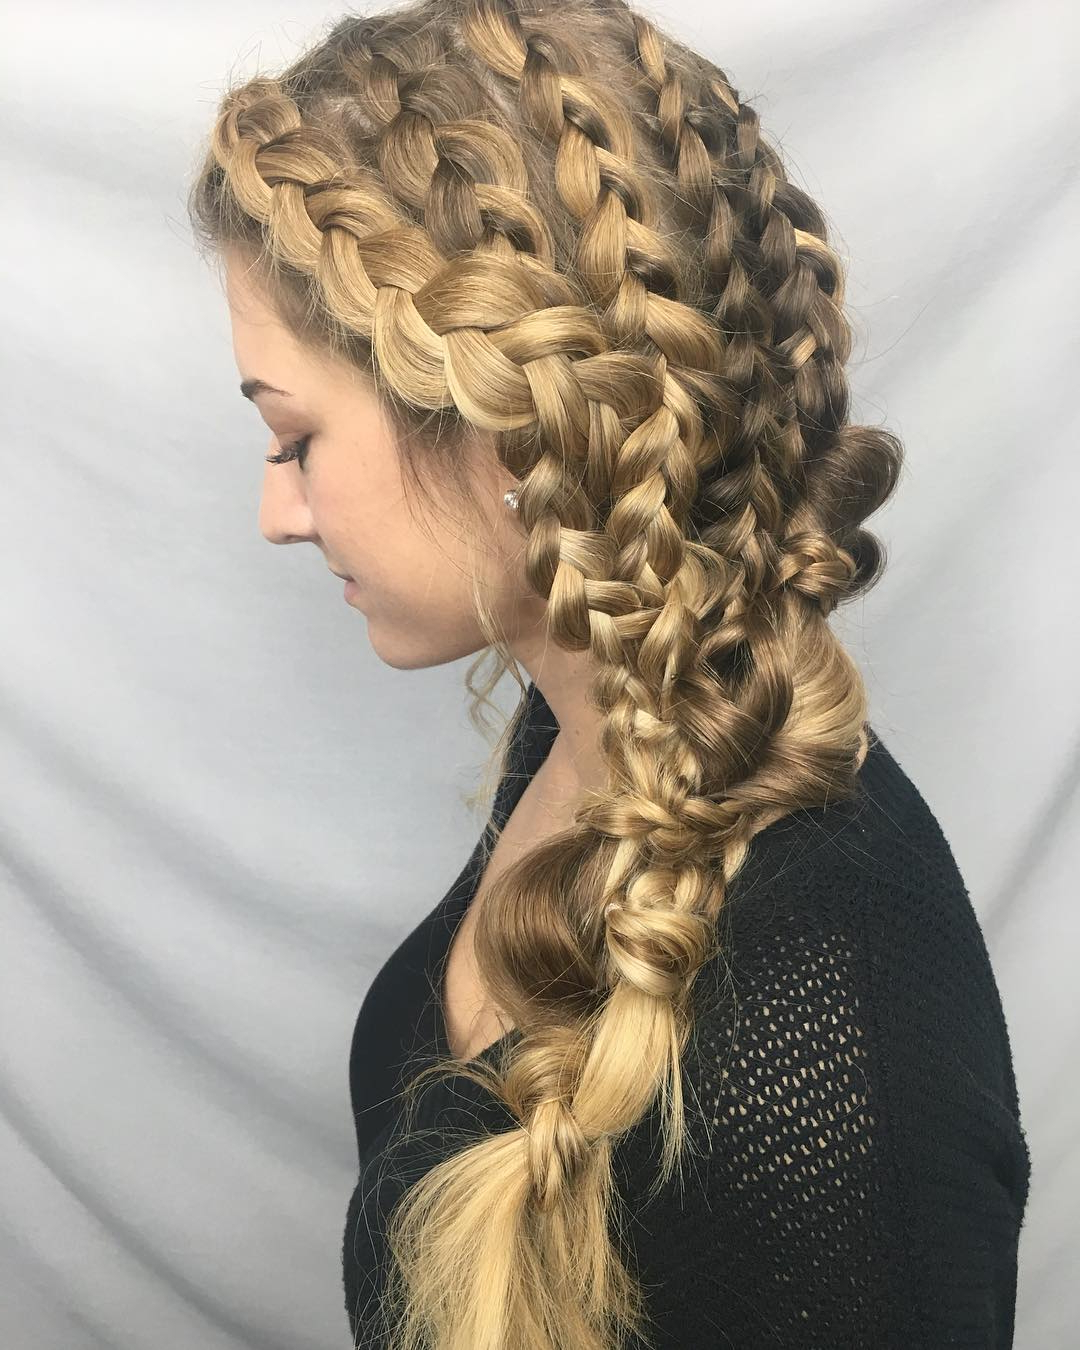 Popular Jewelled Basket Weave Prom Updos Regarding 60 Best Braids, Braid Styles, Braided Hairstyles For Women (View 13 of 20)